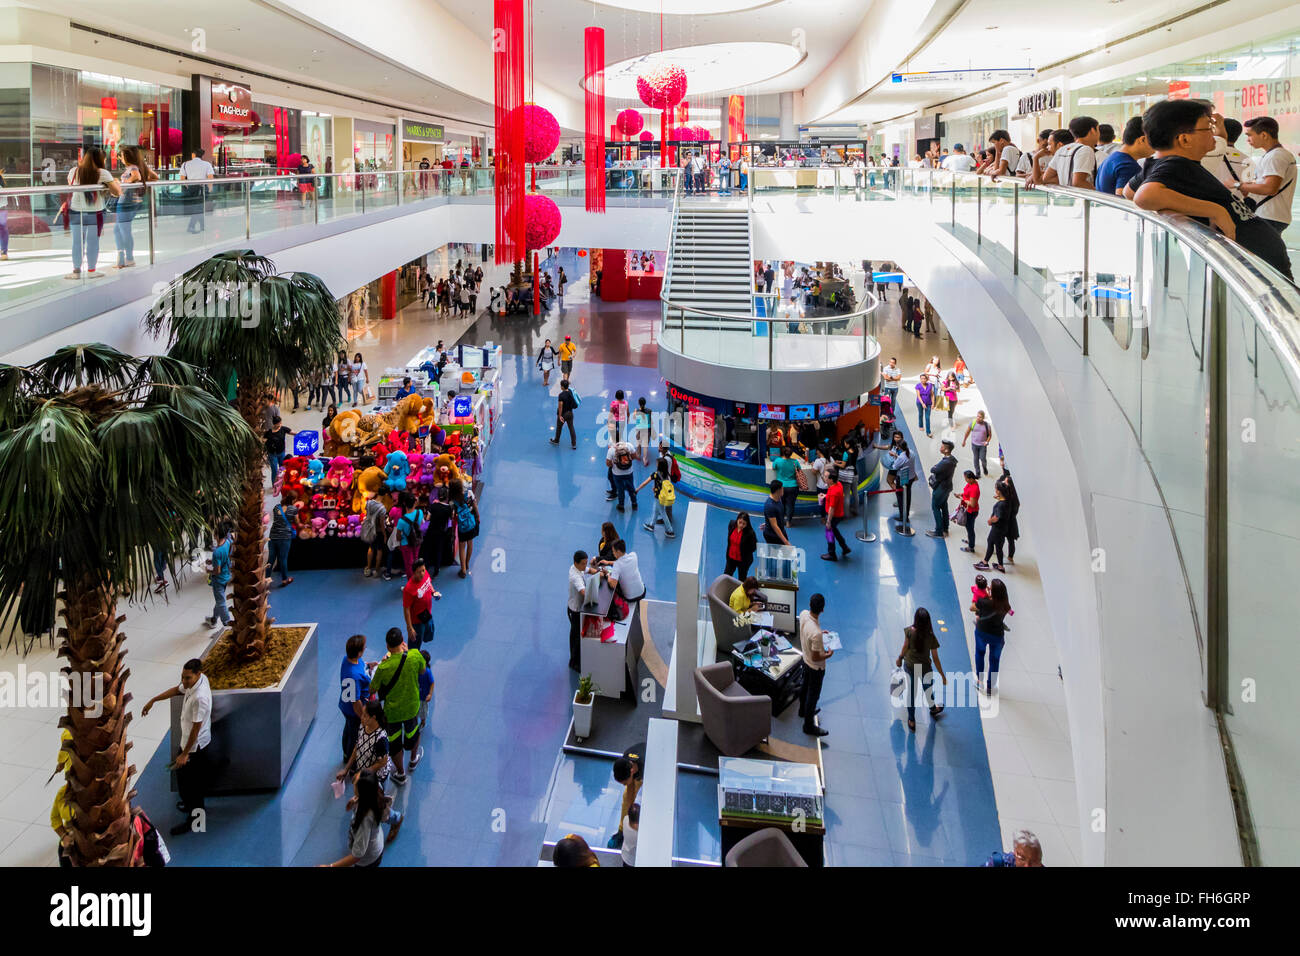 Shoppers at biggest shopping complex Mall of Asia Barangay, Bay City, Pasay,Philippines, - Stock Image